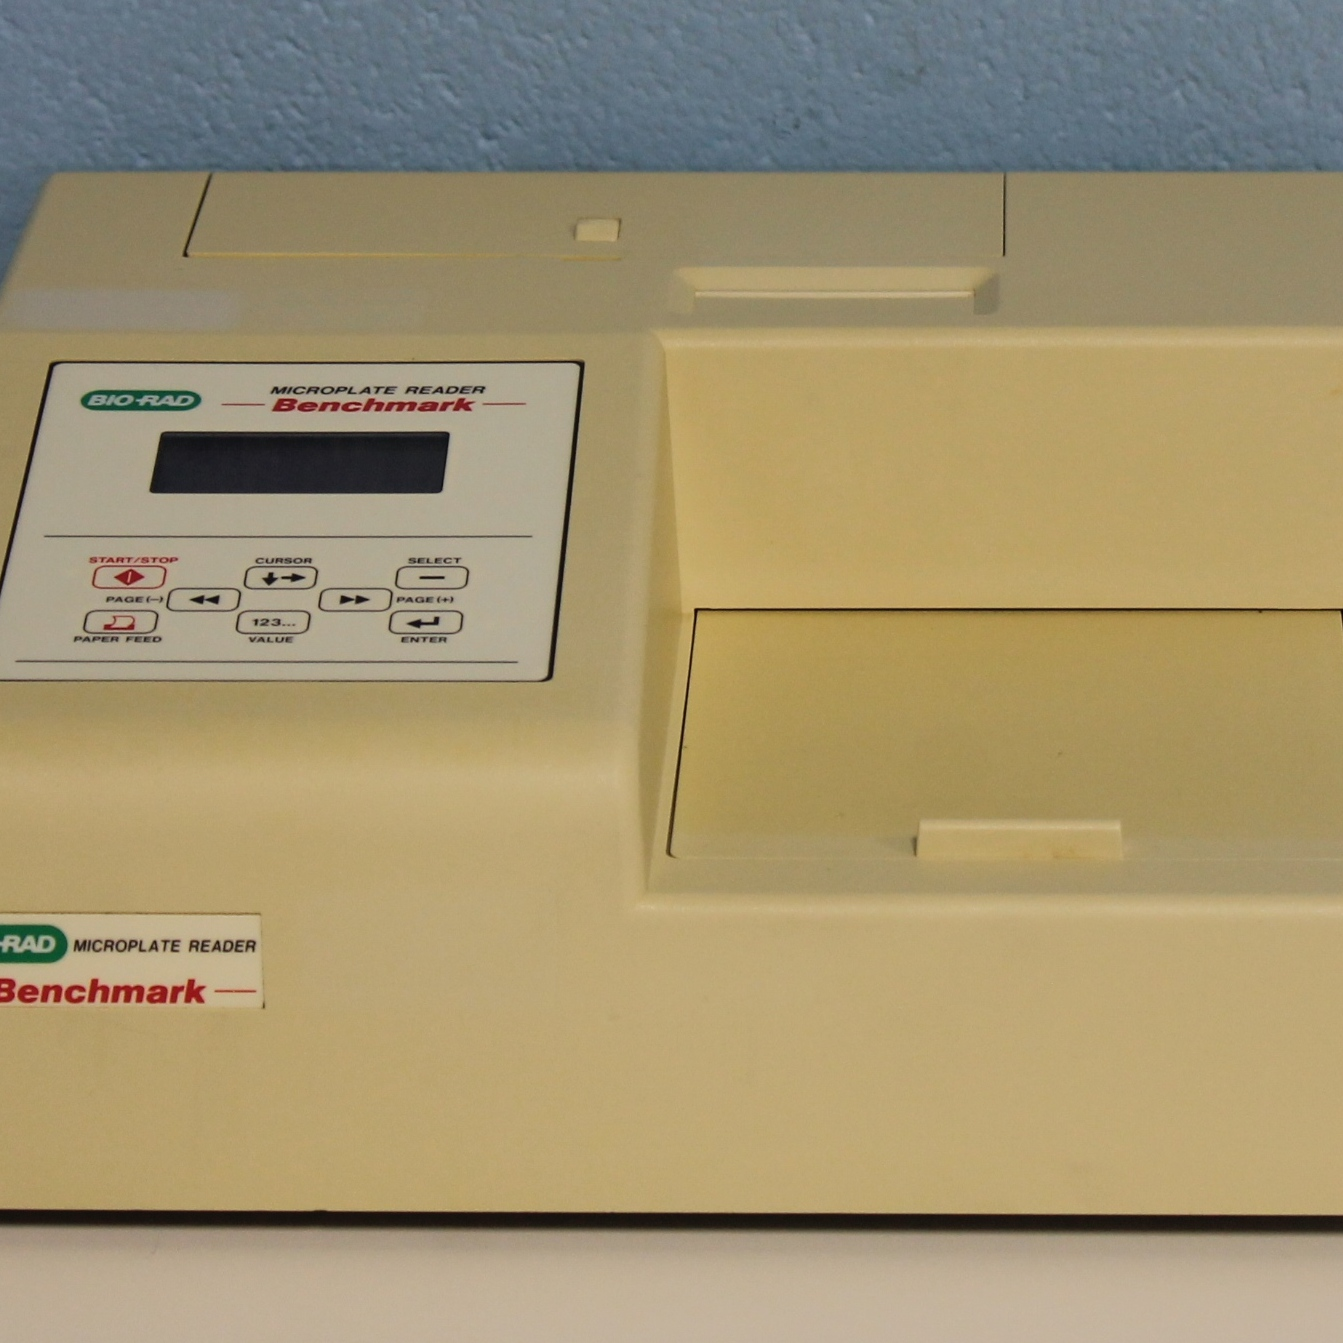 Benchmark Microplate Reader Name